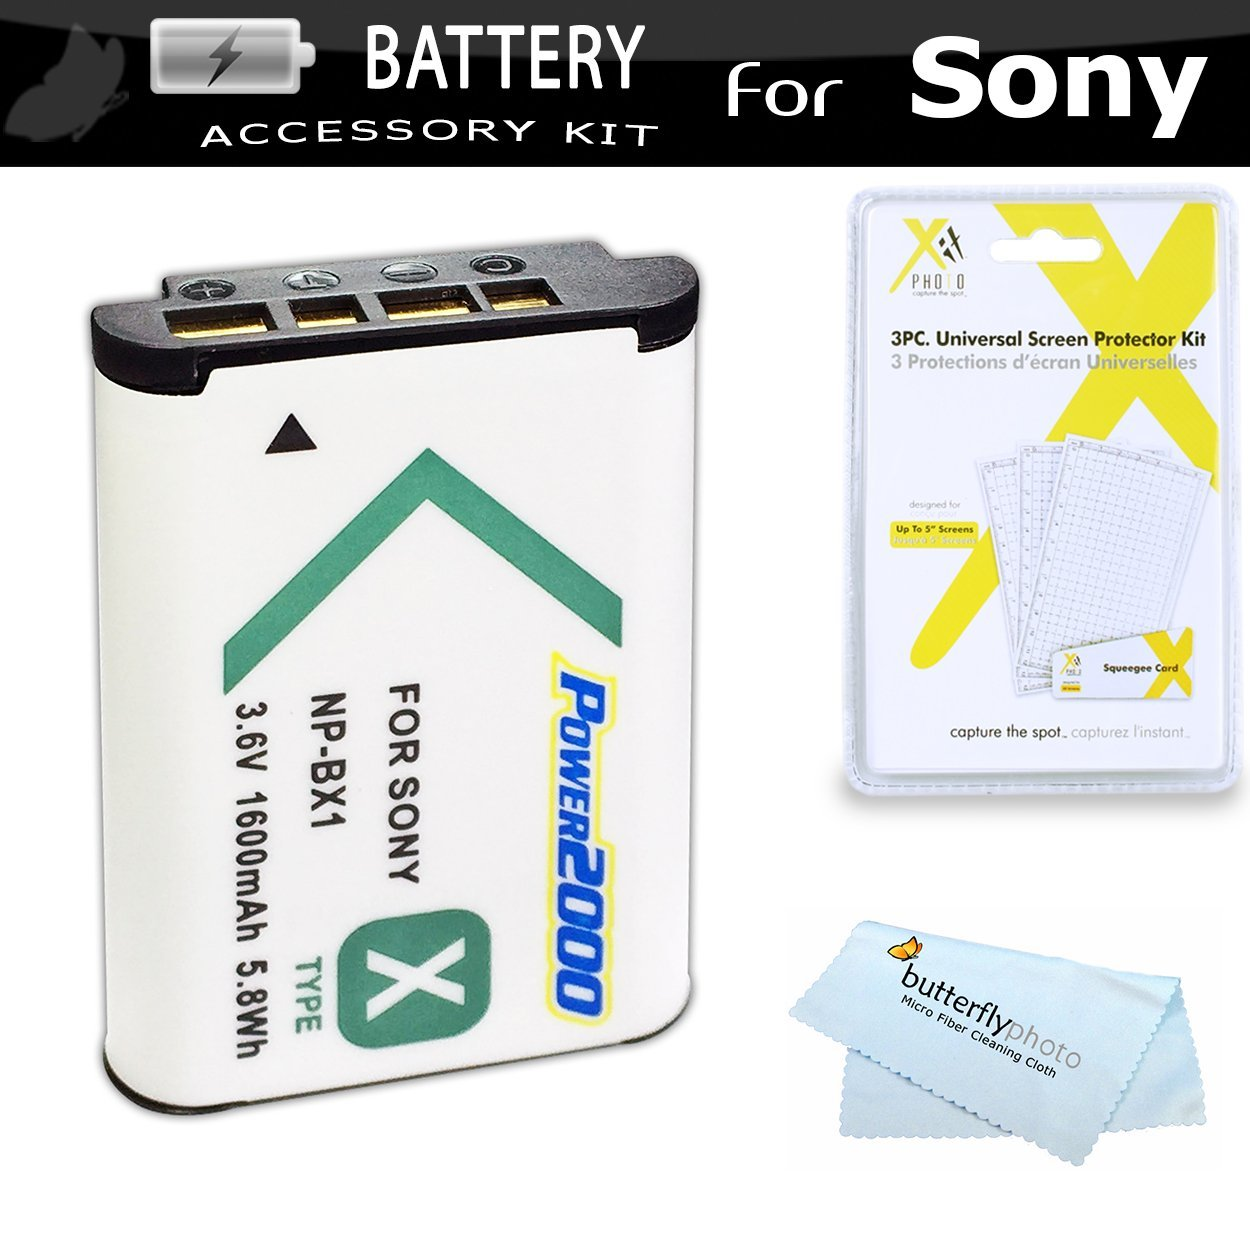 Replacement NP-BX1 Battery Kit For Sony DSC-RX100M IV, DSC-RX1R, DSC-HX300, DSC-WX350, DSC-HX50V, DSC-HX50V/B, HDR-CX240, HDR-PJ275, HDR-AS15, HDR-AS30V, HDR-AS100V, HDR-CX440, HDR-CX405, HDR-PJ440, FDR-X1000V, AS200V Camcorder